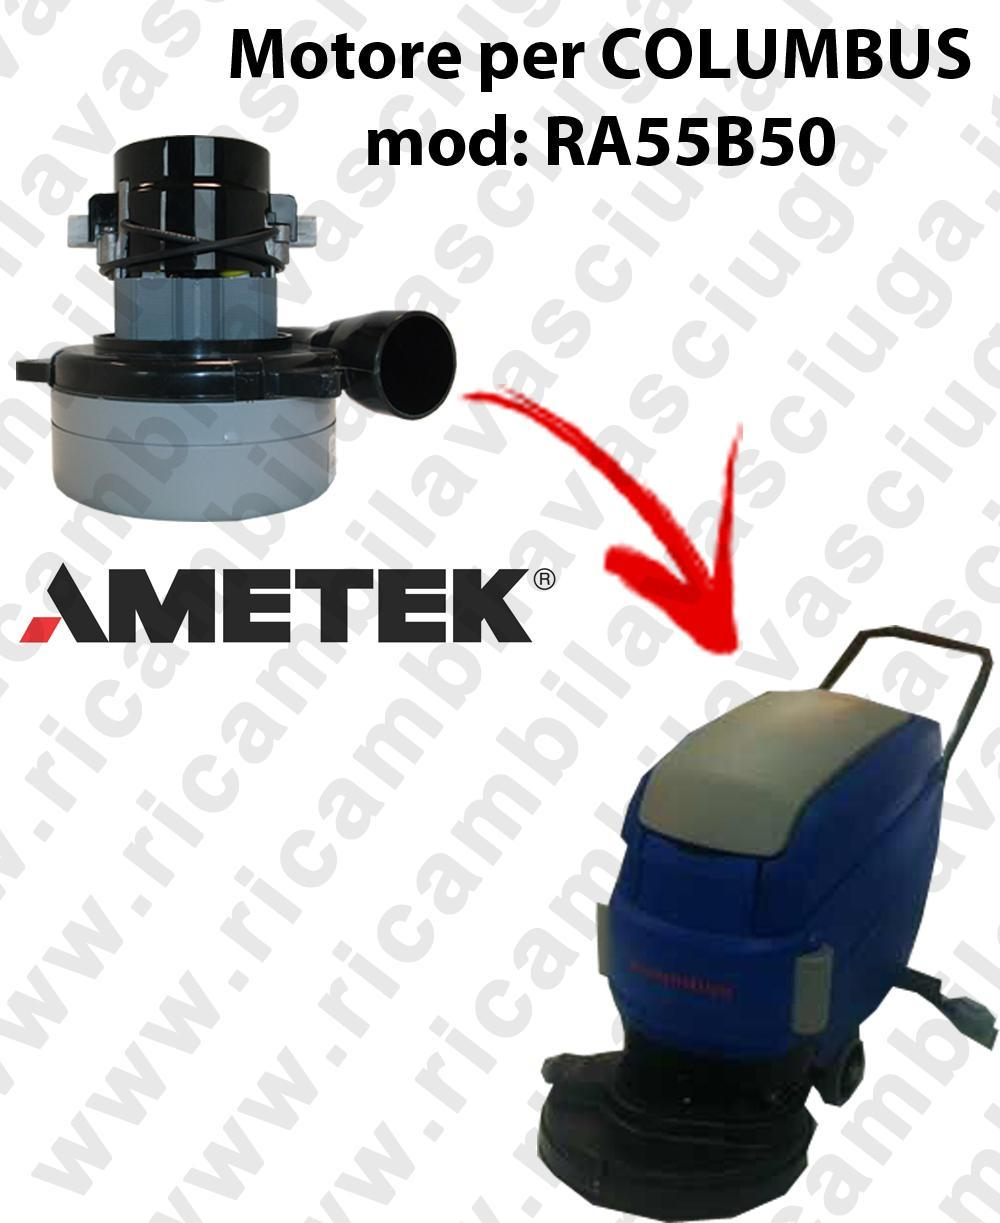 RA55B50 LAMB AMETEK vacuum motor for scrubber dryer COLUMBUS